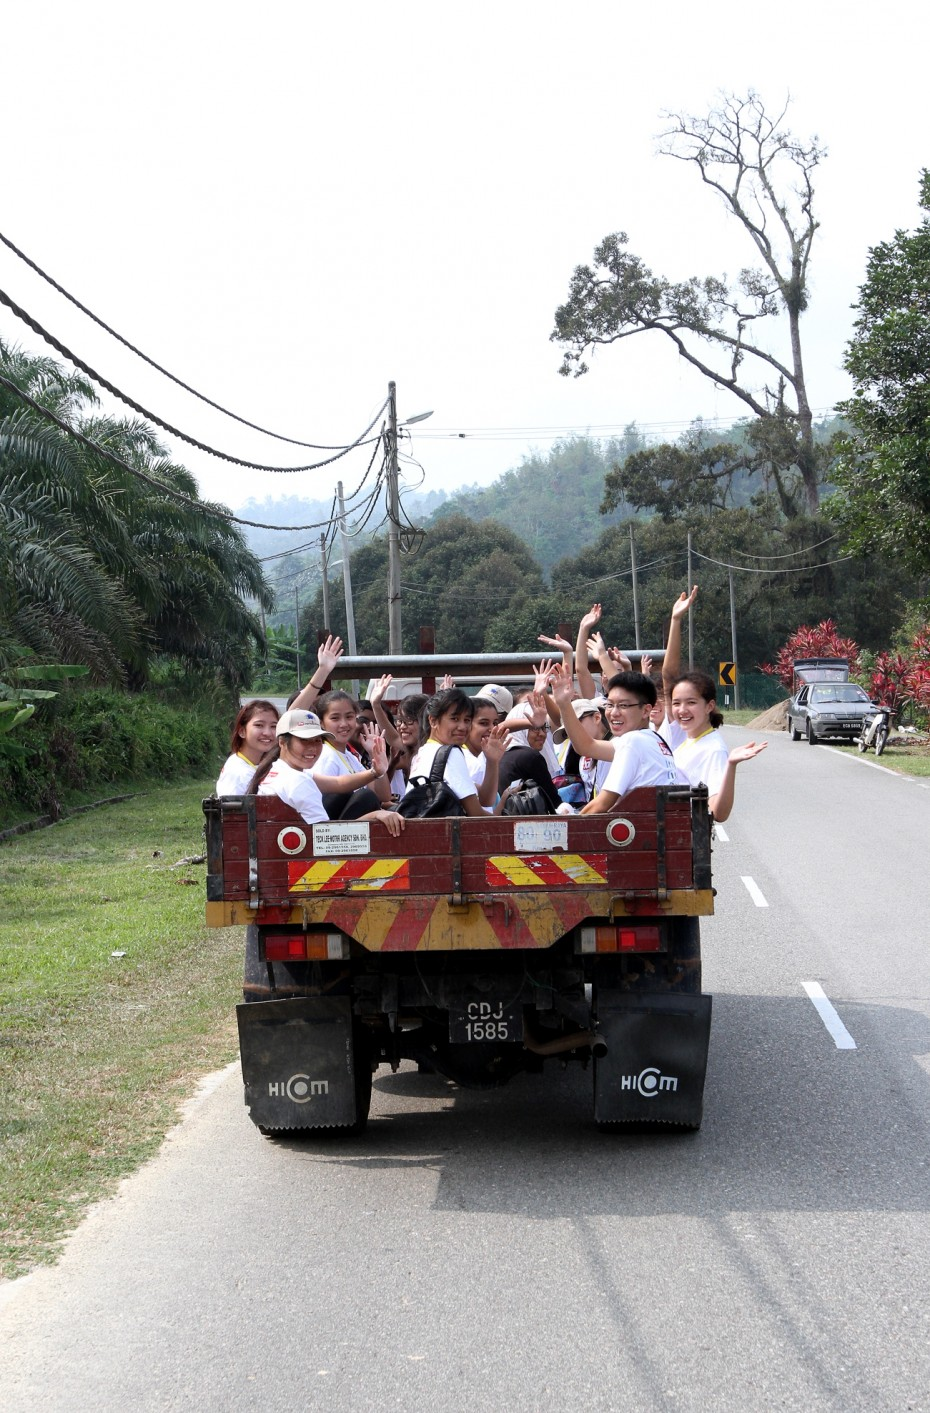 The journey to the Sungai Dalam orang asli village was an adventure in itself as the BRATs got to ride through the jungle on the back of a truck